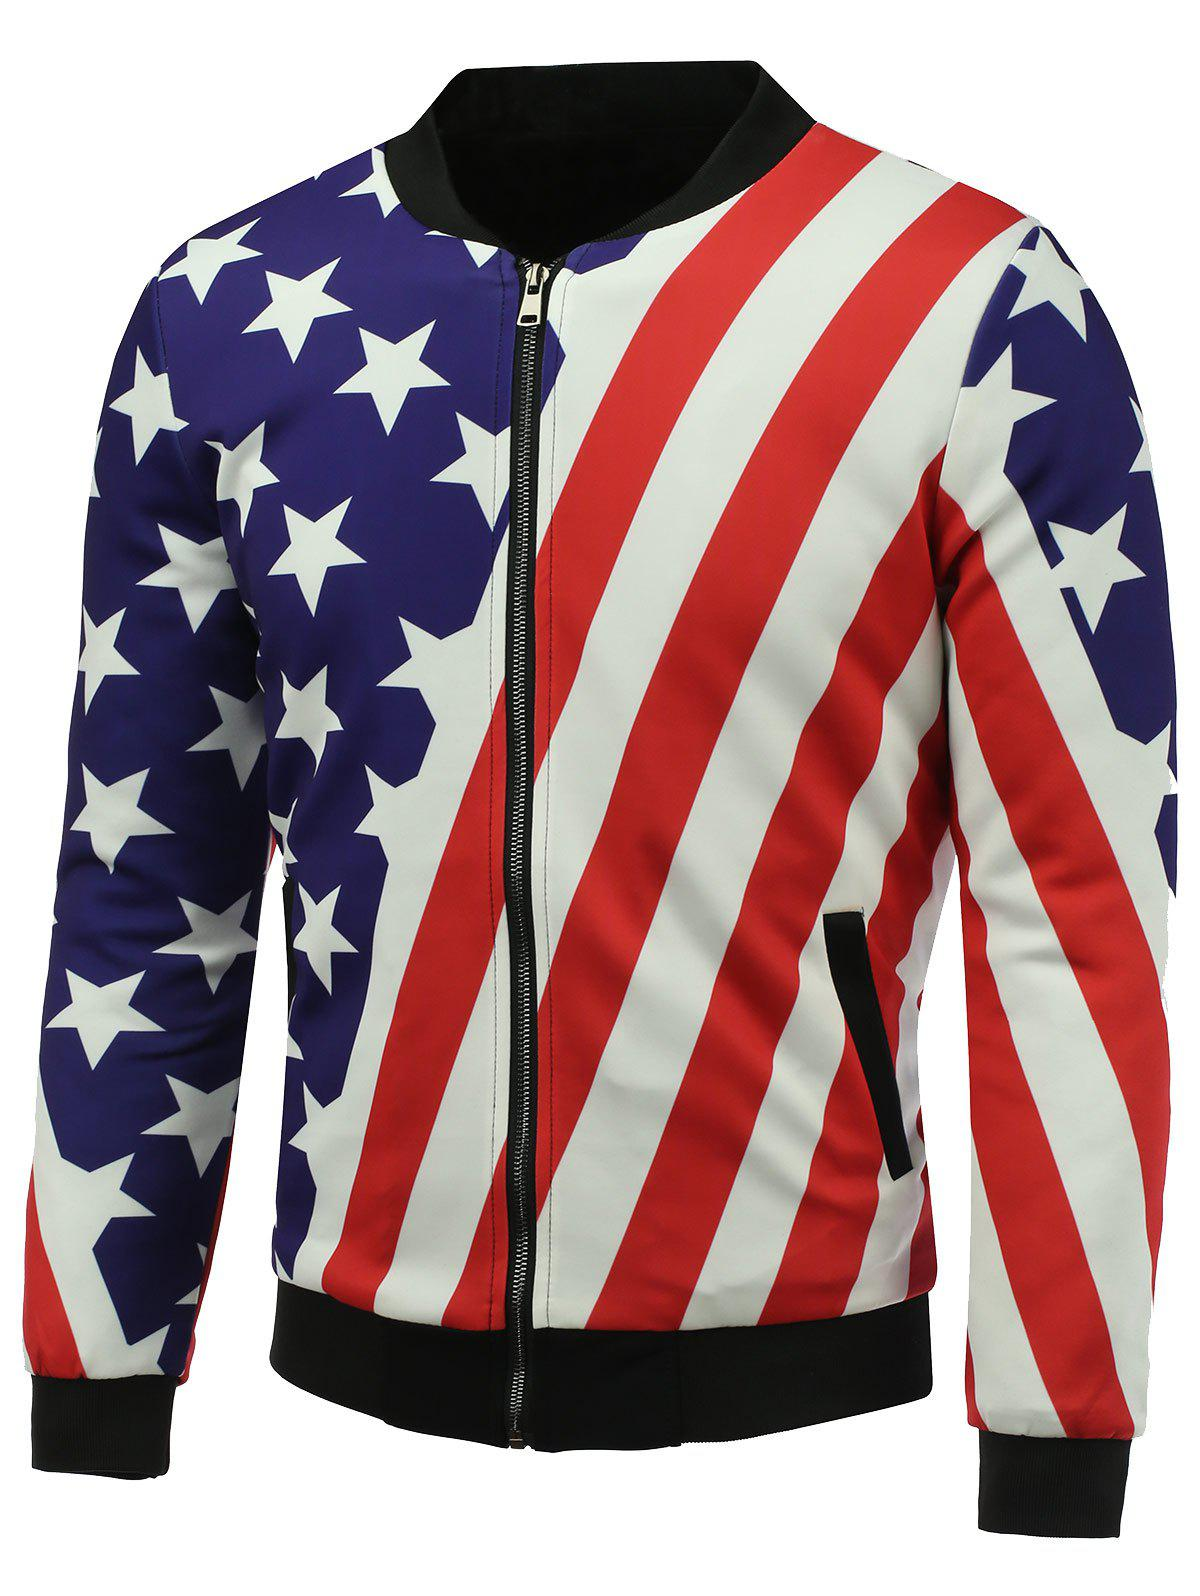 3D Stars and Stripes Print Stand Collar Zip Up Jacket rembourré - multicolore L